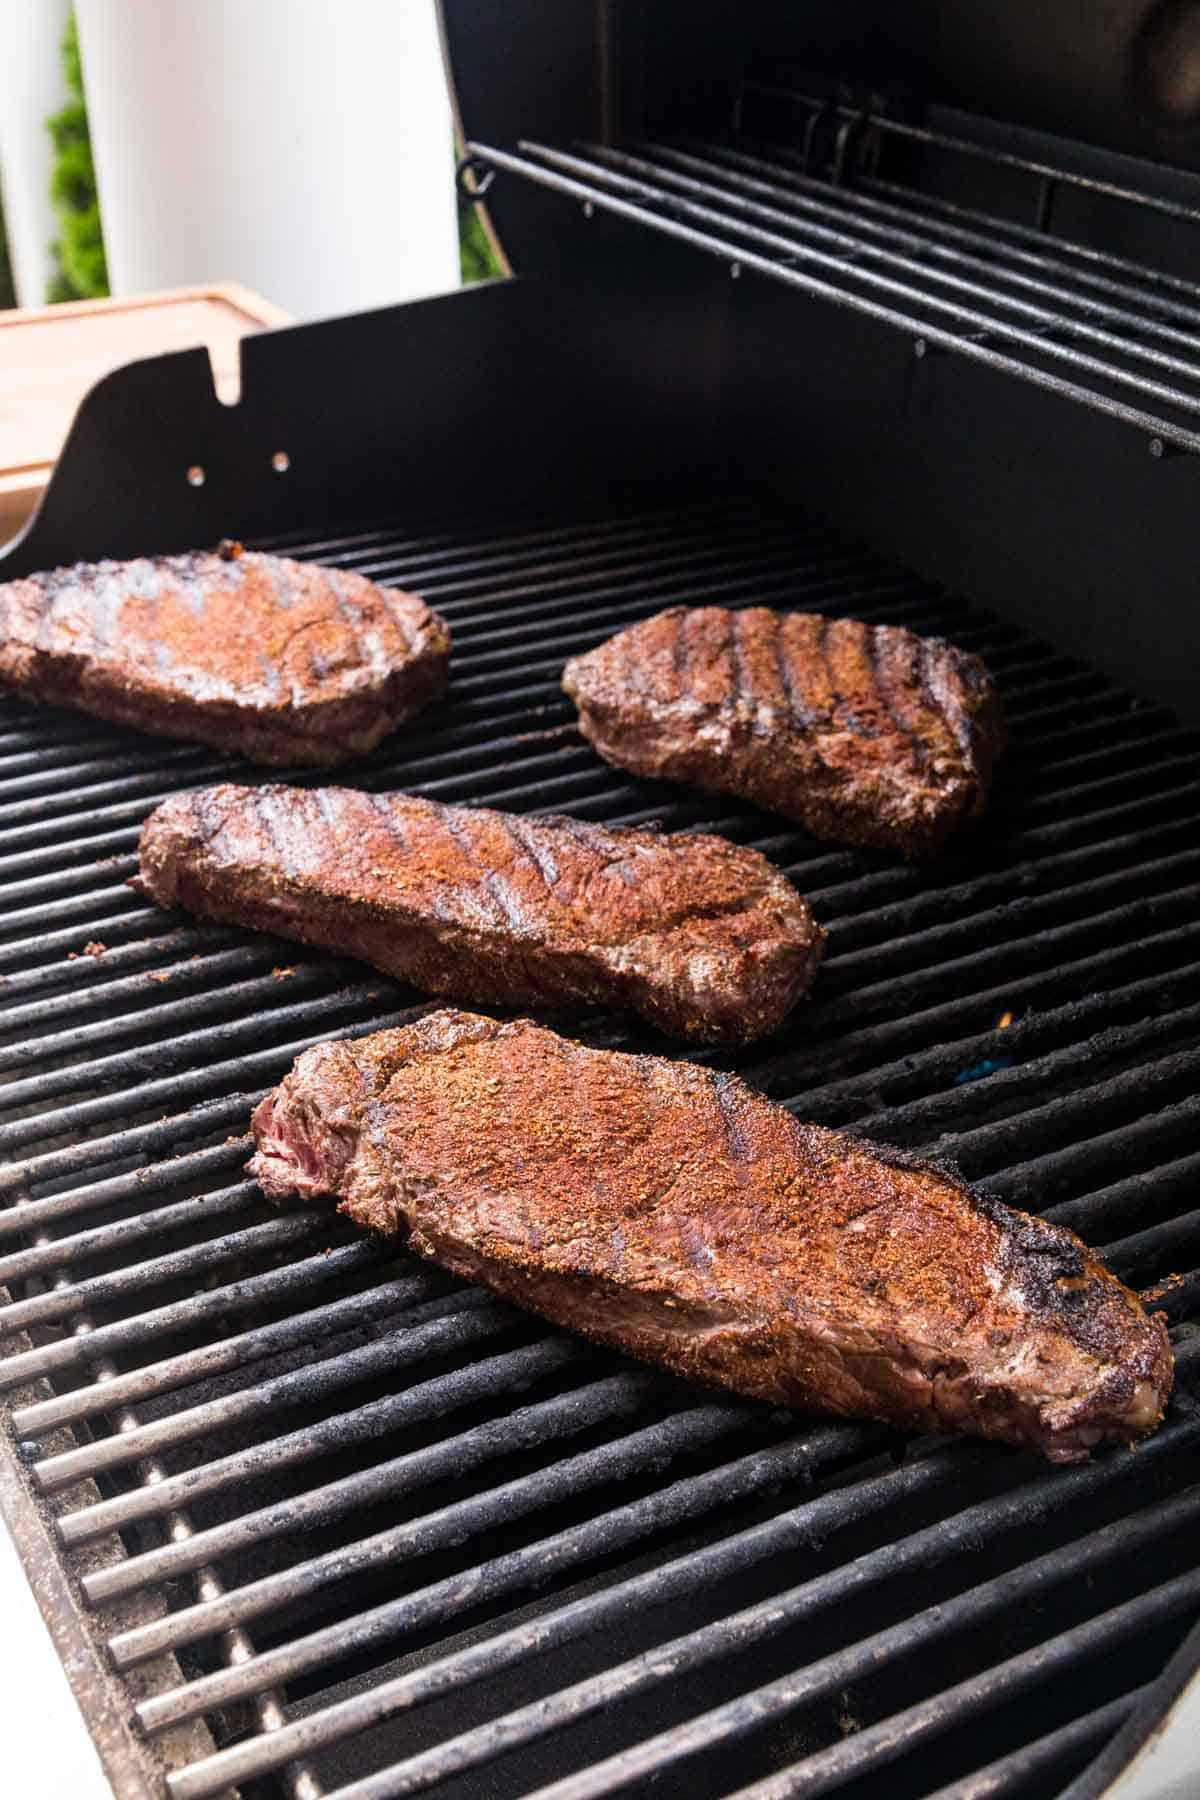 Four Blackened NY Stip Steaks Cooking Directly on the Grates of a Grill